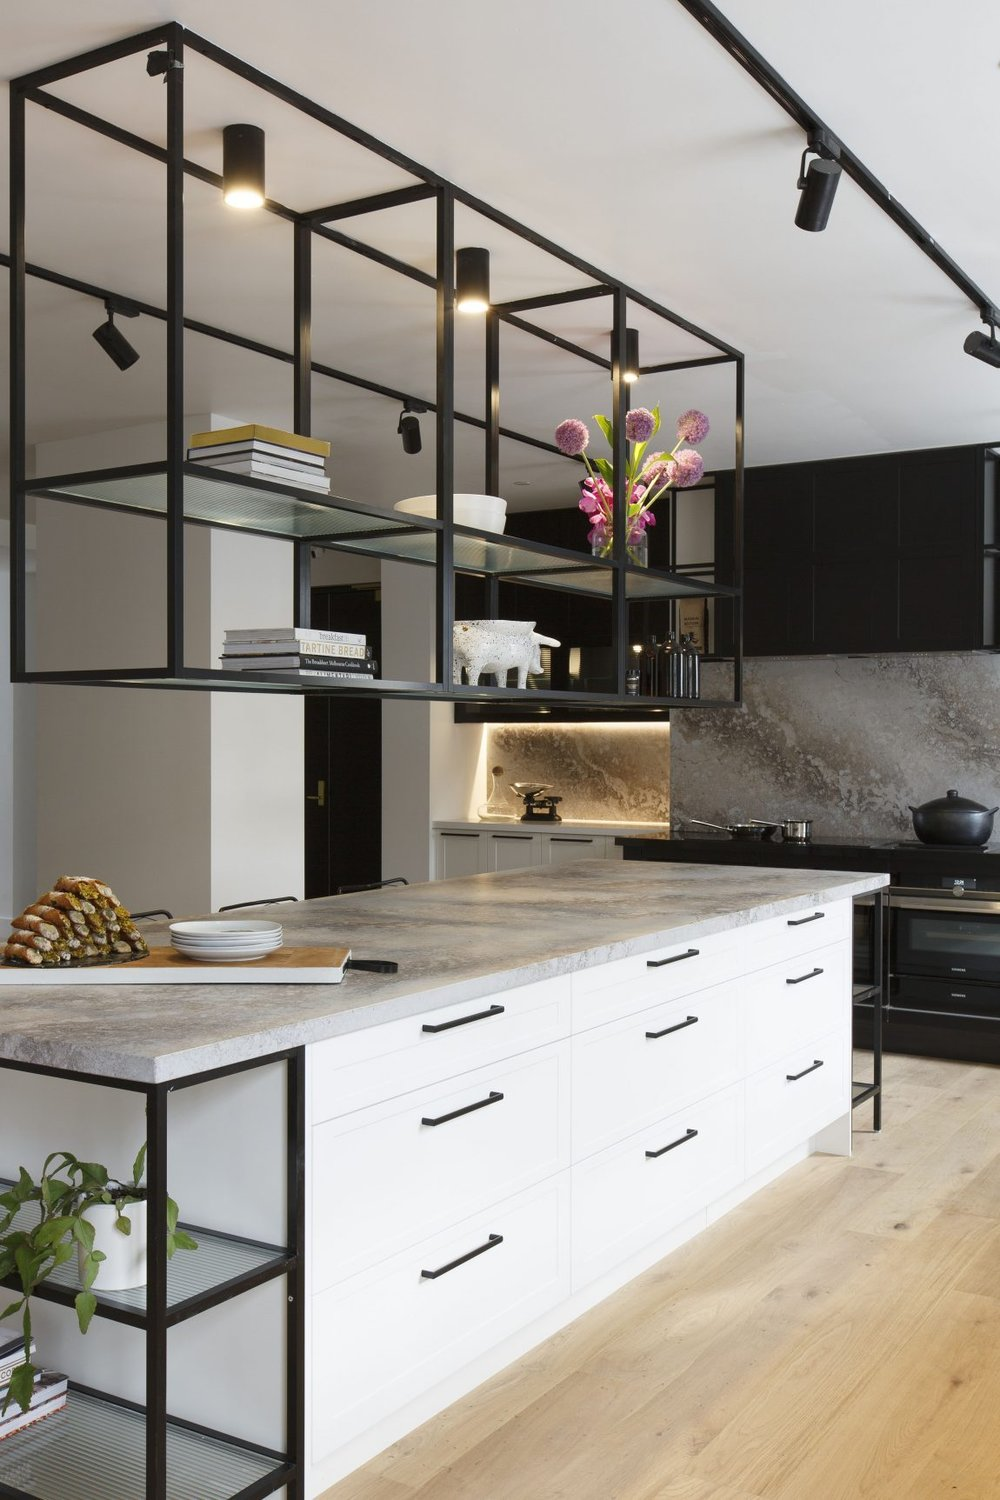 This is the kitchen that goes with it (which I adore by the way). The only thing is, the fridges are miles away, in the butlers pantry across the hallway. A big fail. They should have at least put a bar fridge in the kitchen. |  source